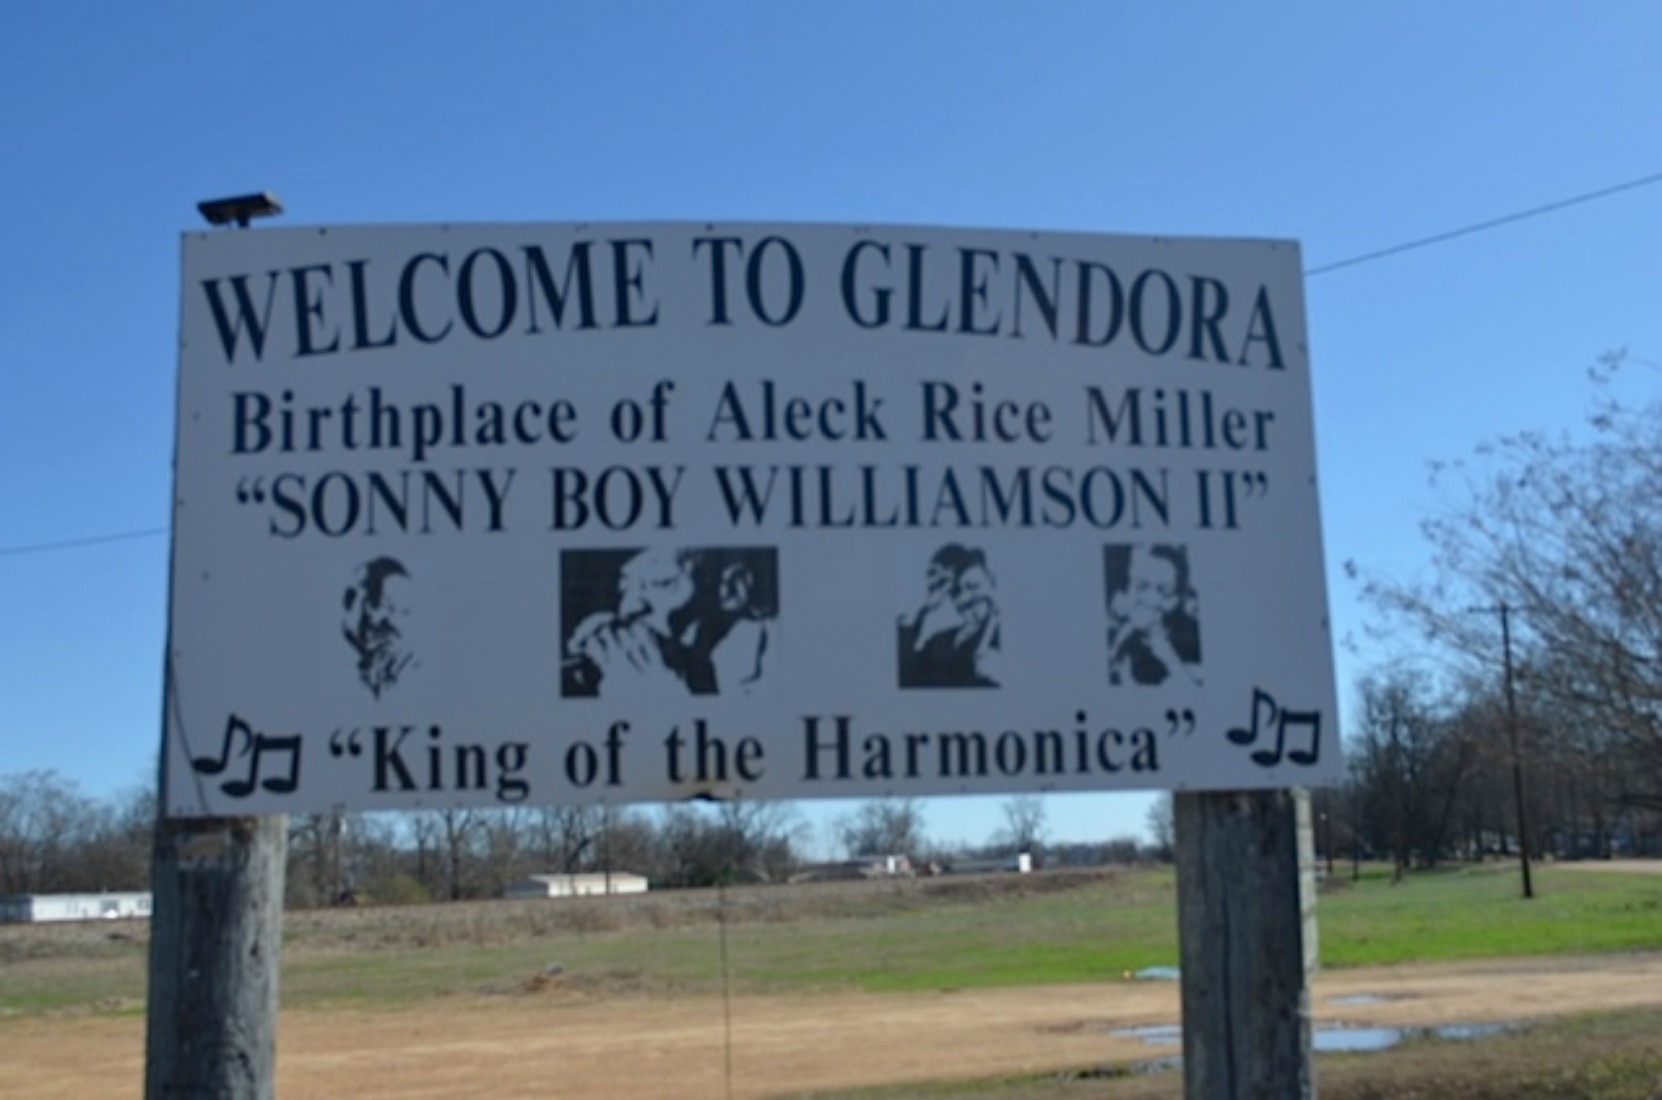 Sonny Boy Williamson Birthplace sign, Glendora, Mississippi (courtesy of Keith Petersen)